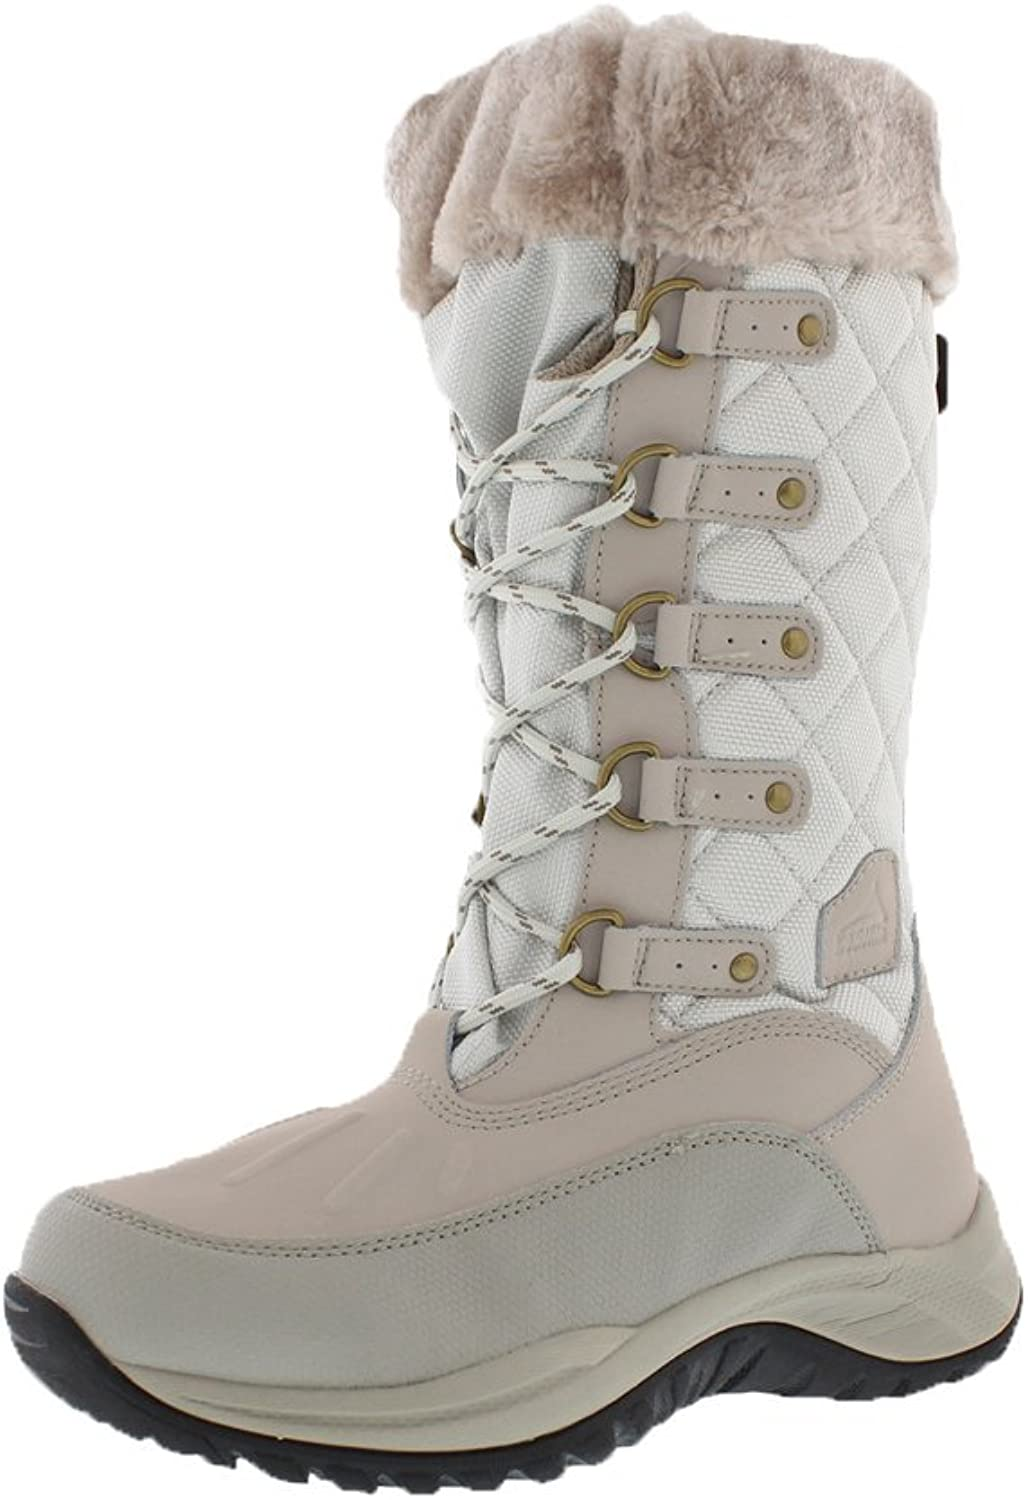 Pacific Mountain Women's Whiteout Water-Resistant Winter Fashion Snow Boots